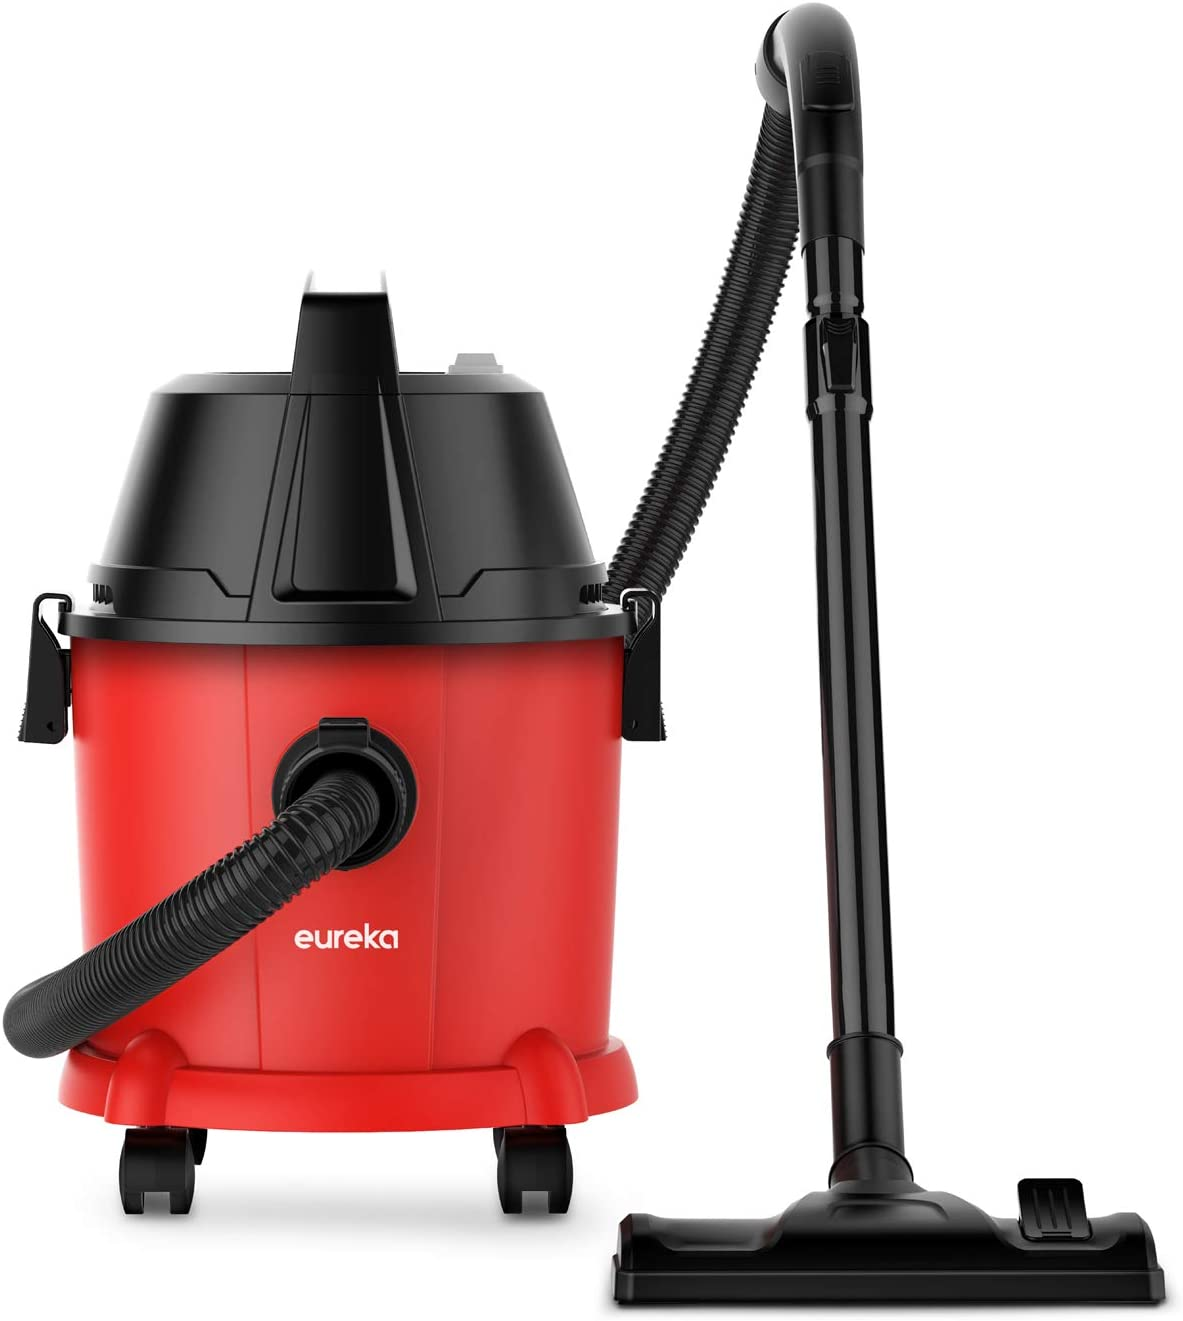 Eureka Wet and Dry Vacuum, Vacuum Cleaner, 3 in 1 Function , 15L Capacity and 1400W Compact with Safe Buoy Technology, WetDry Blowing for Dirt and